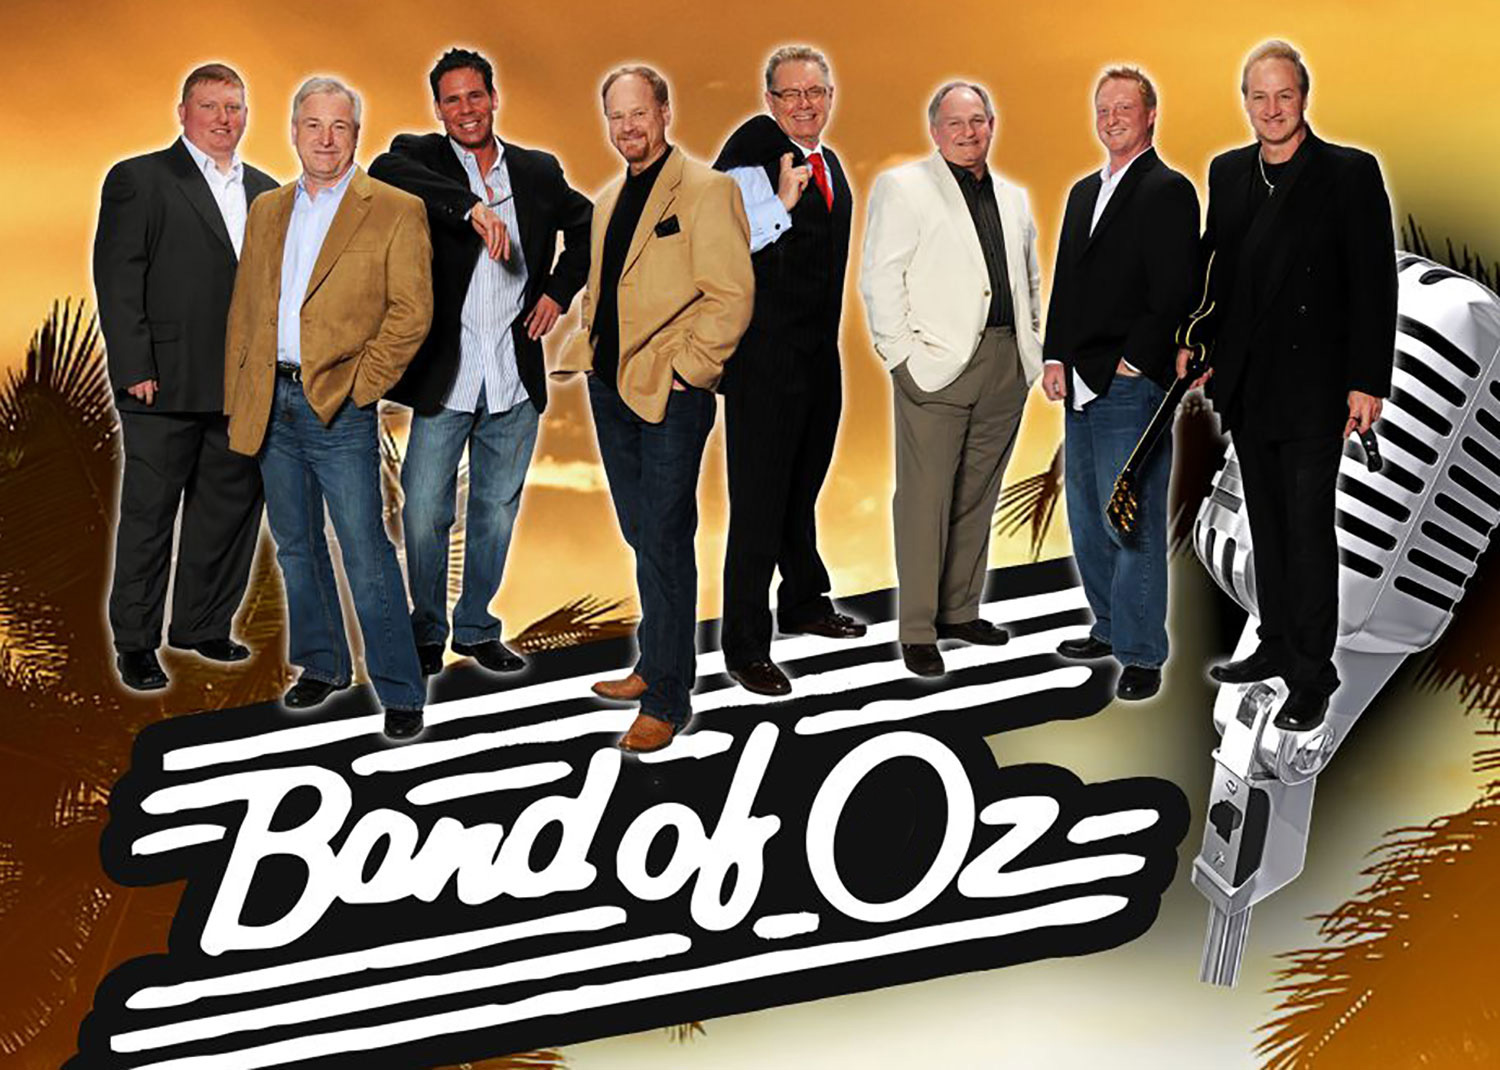 The band of oz